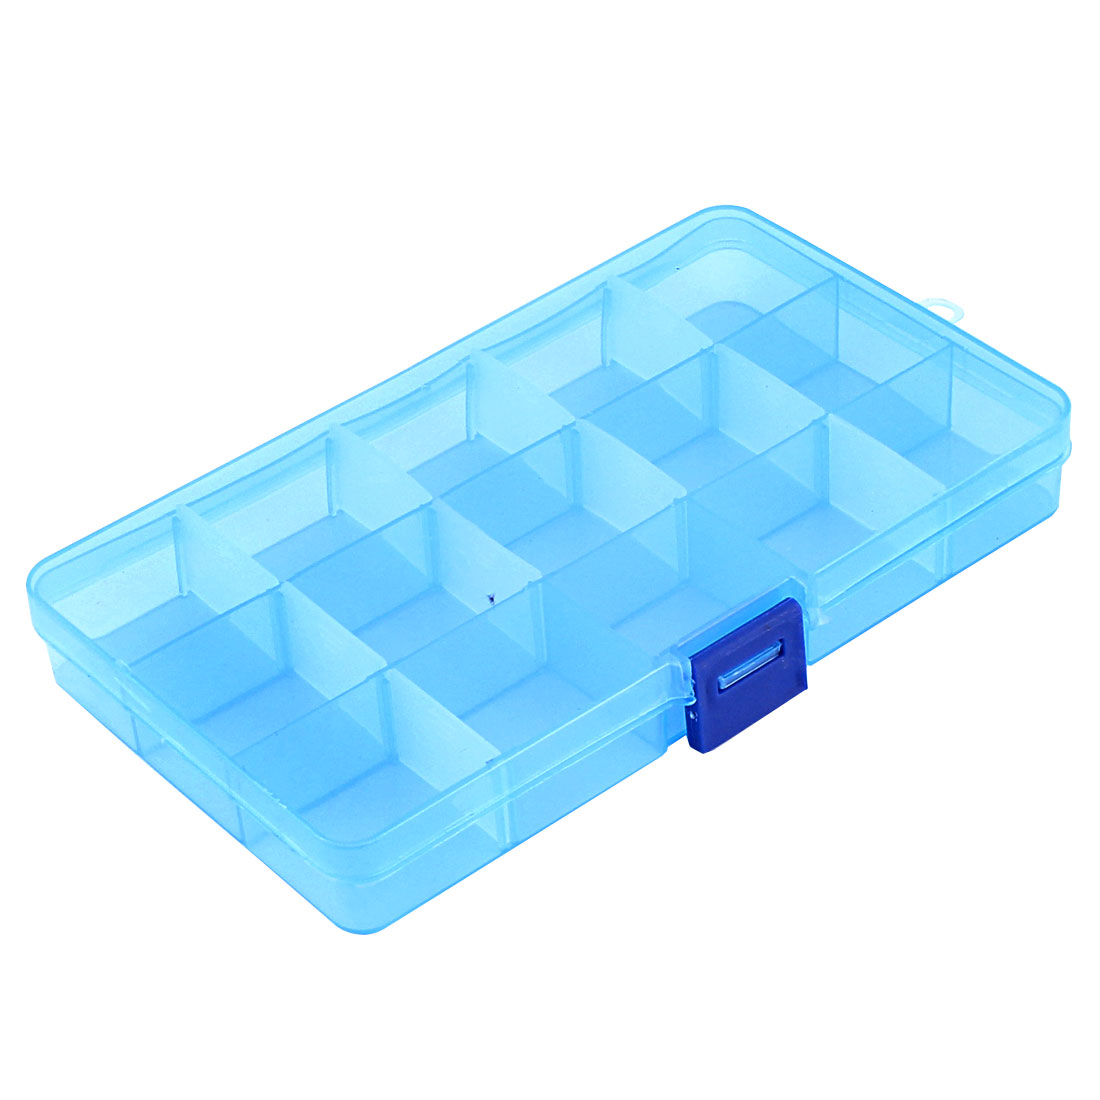 Medicine Jewellery Plastic 15 Slots Storage Box Case Organizer Container Clear Blue